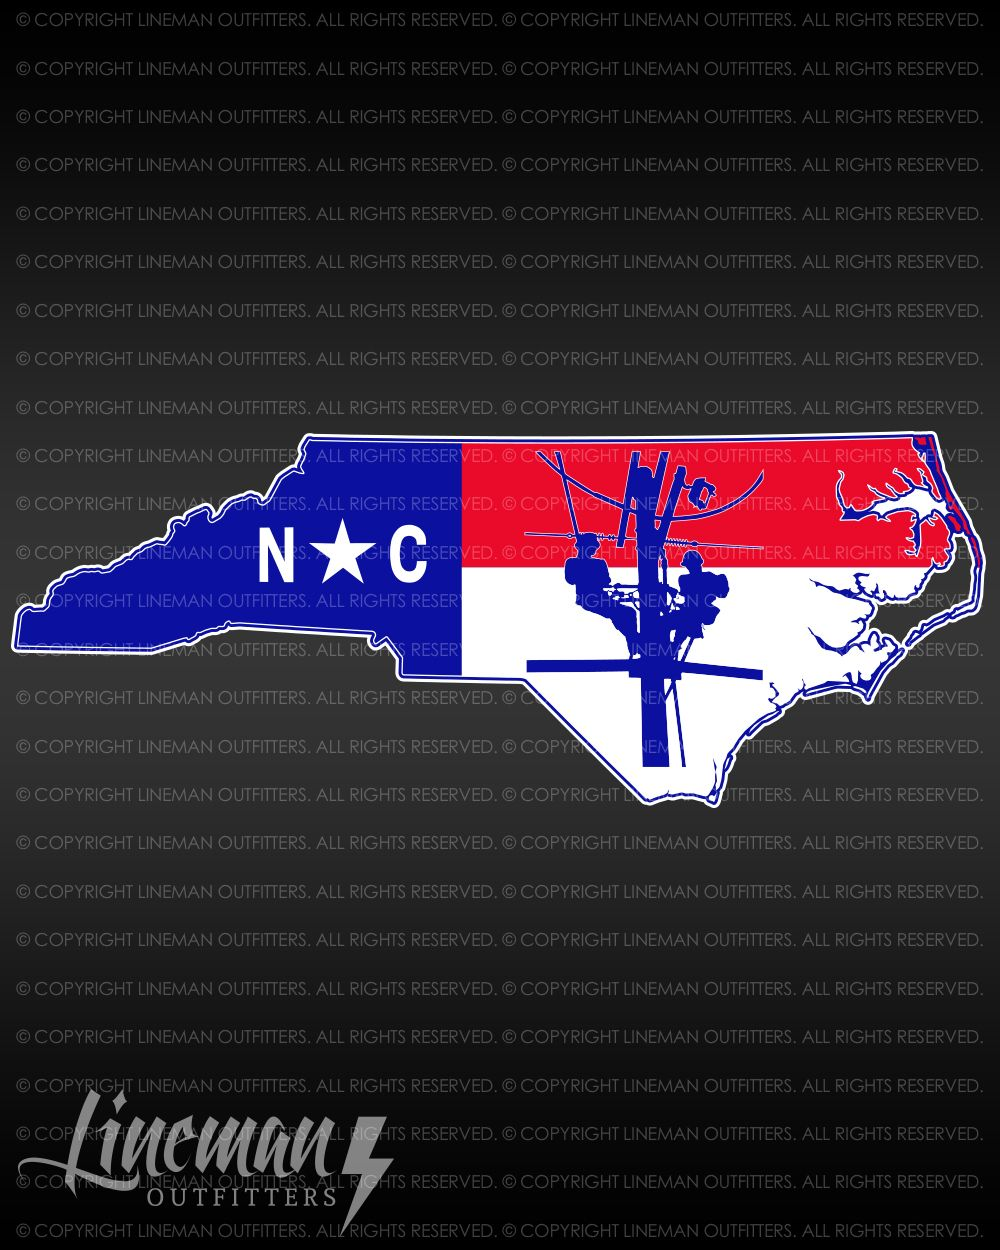 784718ac Nc state flag linemen decal | Lineman Outfitters | Lineman, North ...